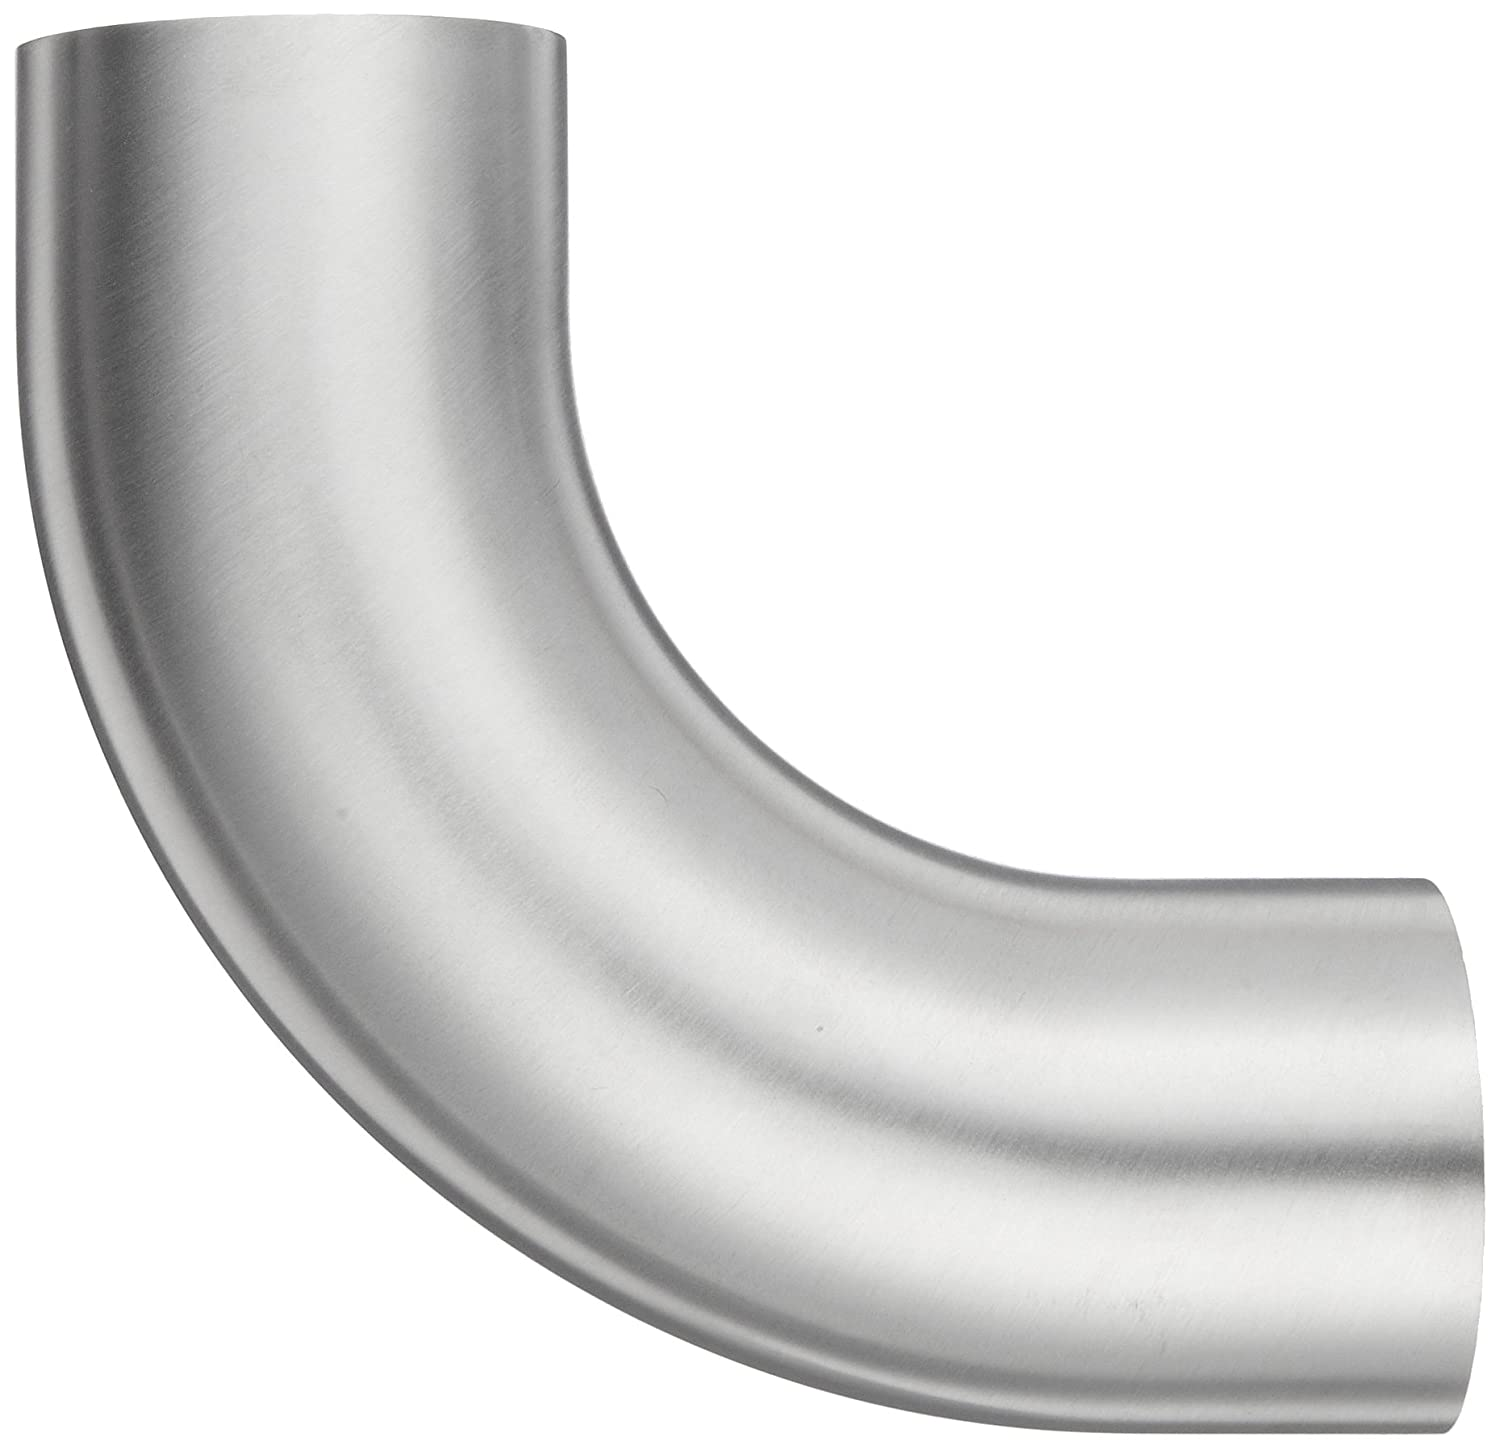 90 Degree Polished Weld Long Elbow with Tangent 2 Tube OD Dixon B2S-G200P Stainless Steel 304 Sanitary Fitting